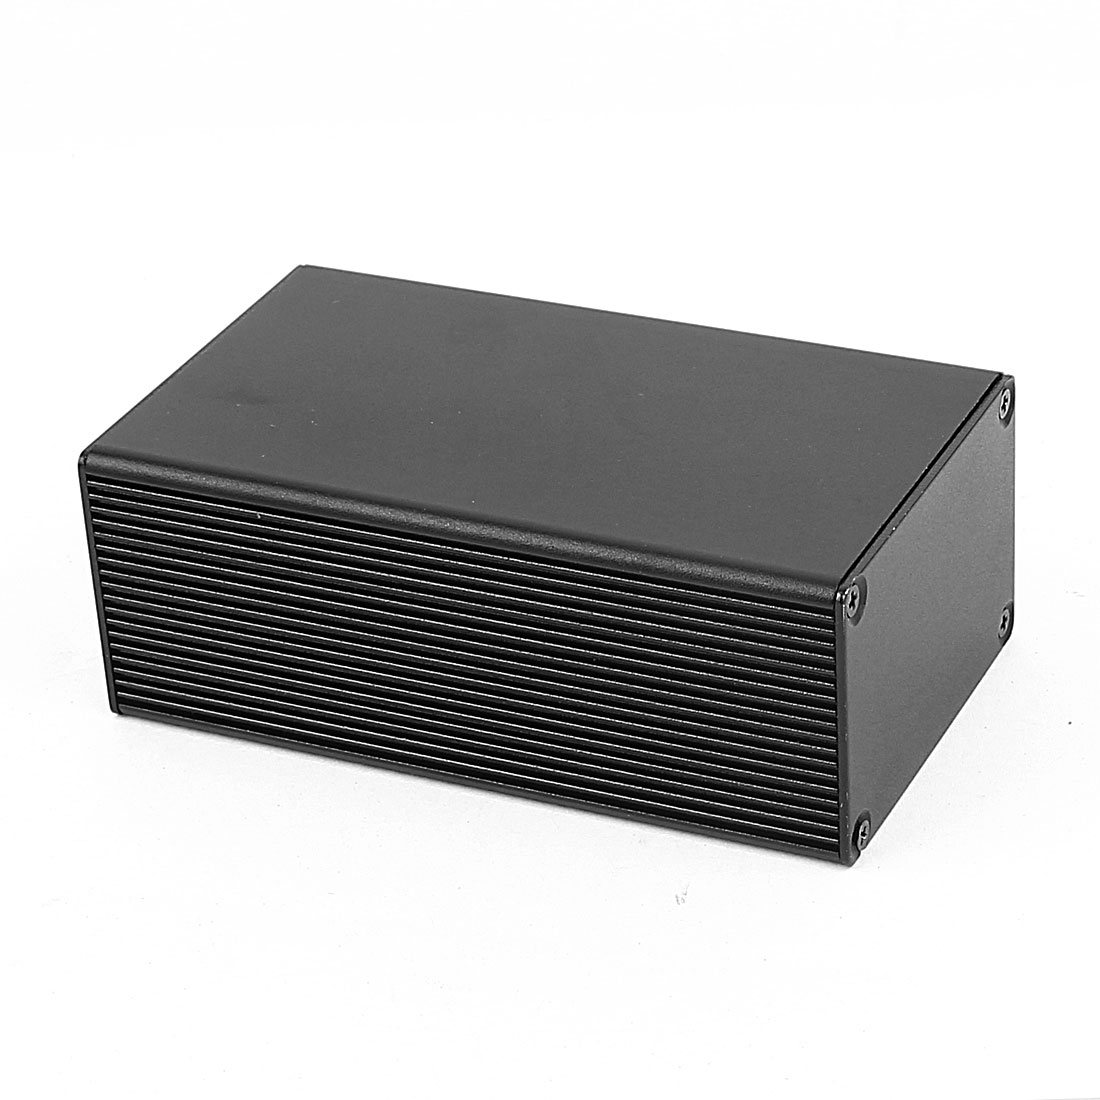 Aluminum Enclosure Case Electronic Power DIY Junction Project Box 110x66x43mm Black